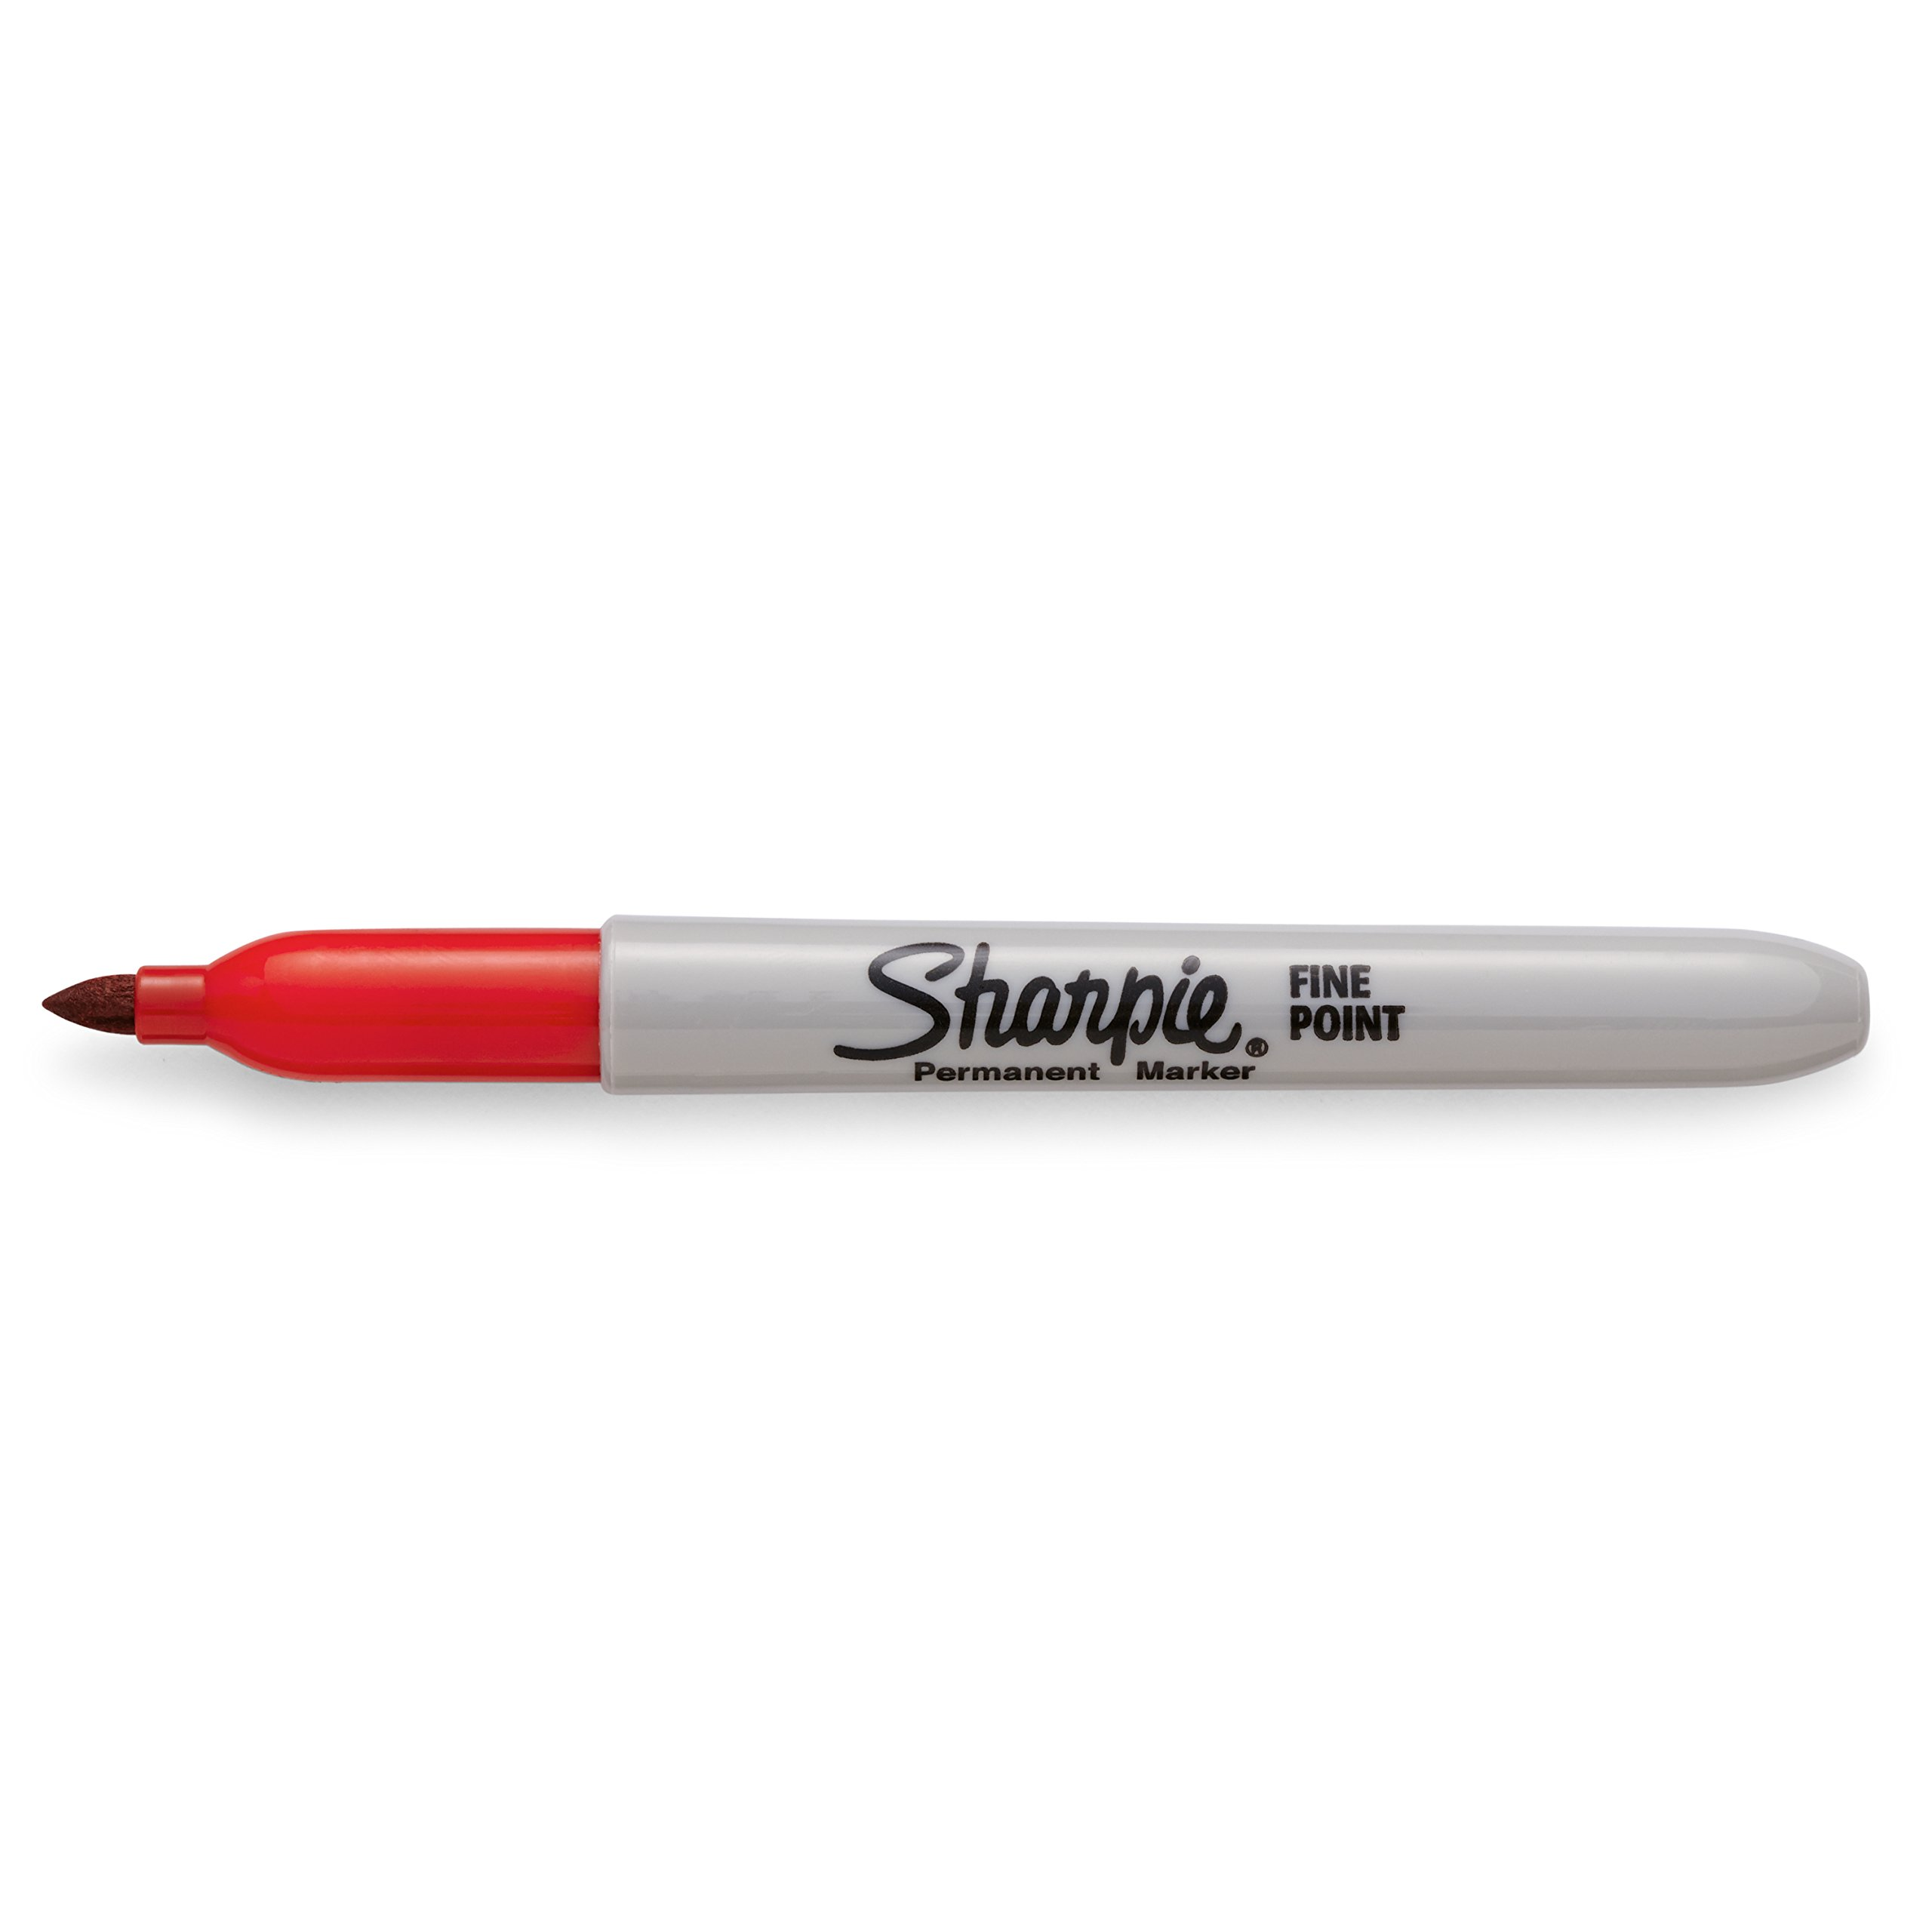 Sharpie Color Burst Permanent Markers, Fine Point, Assorted Colors, 24 Count by Sharpie (Image #13)